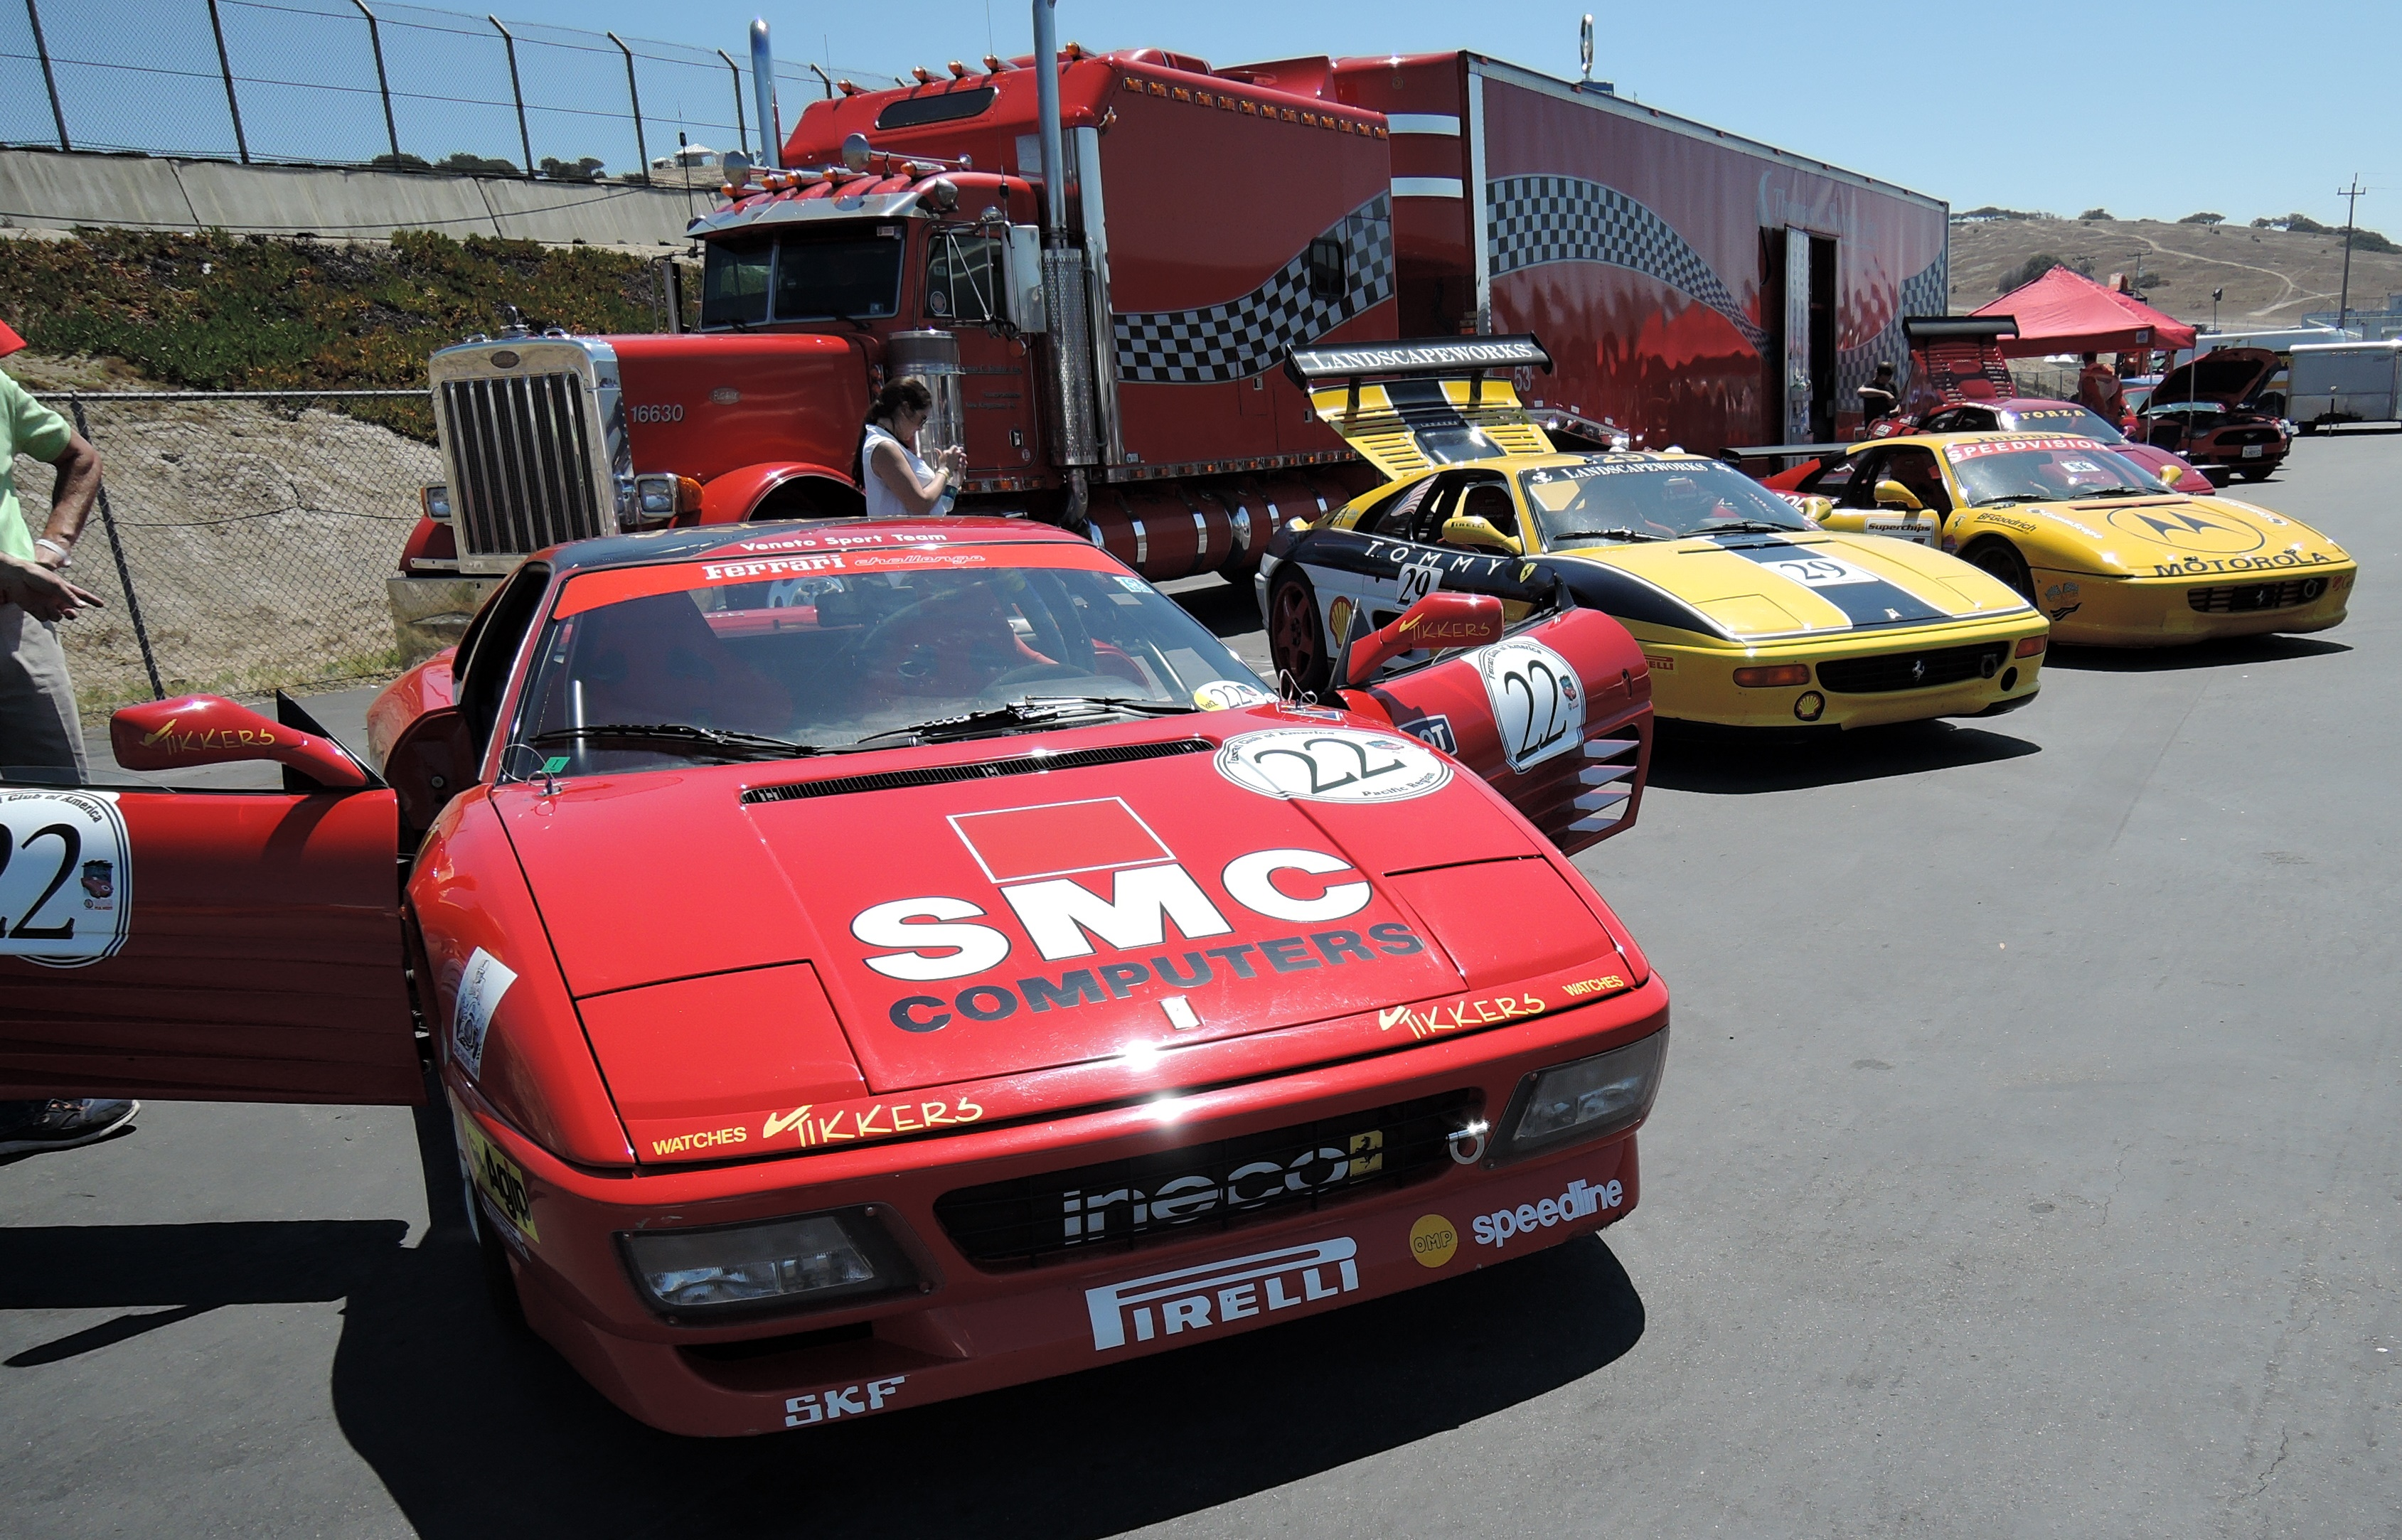 ferrari 348 and 355 Challenge cars - ferrari club at laguna seca